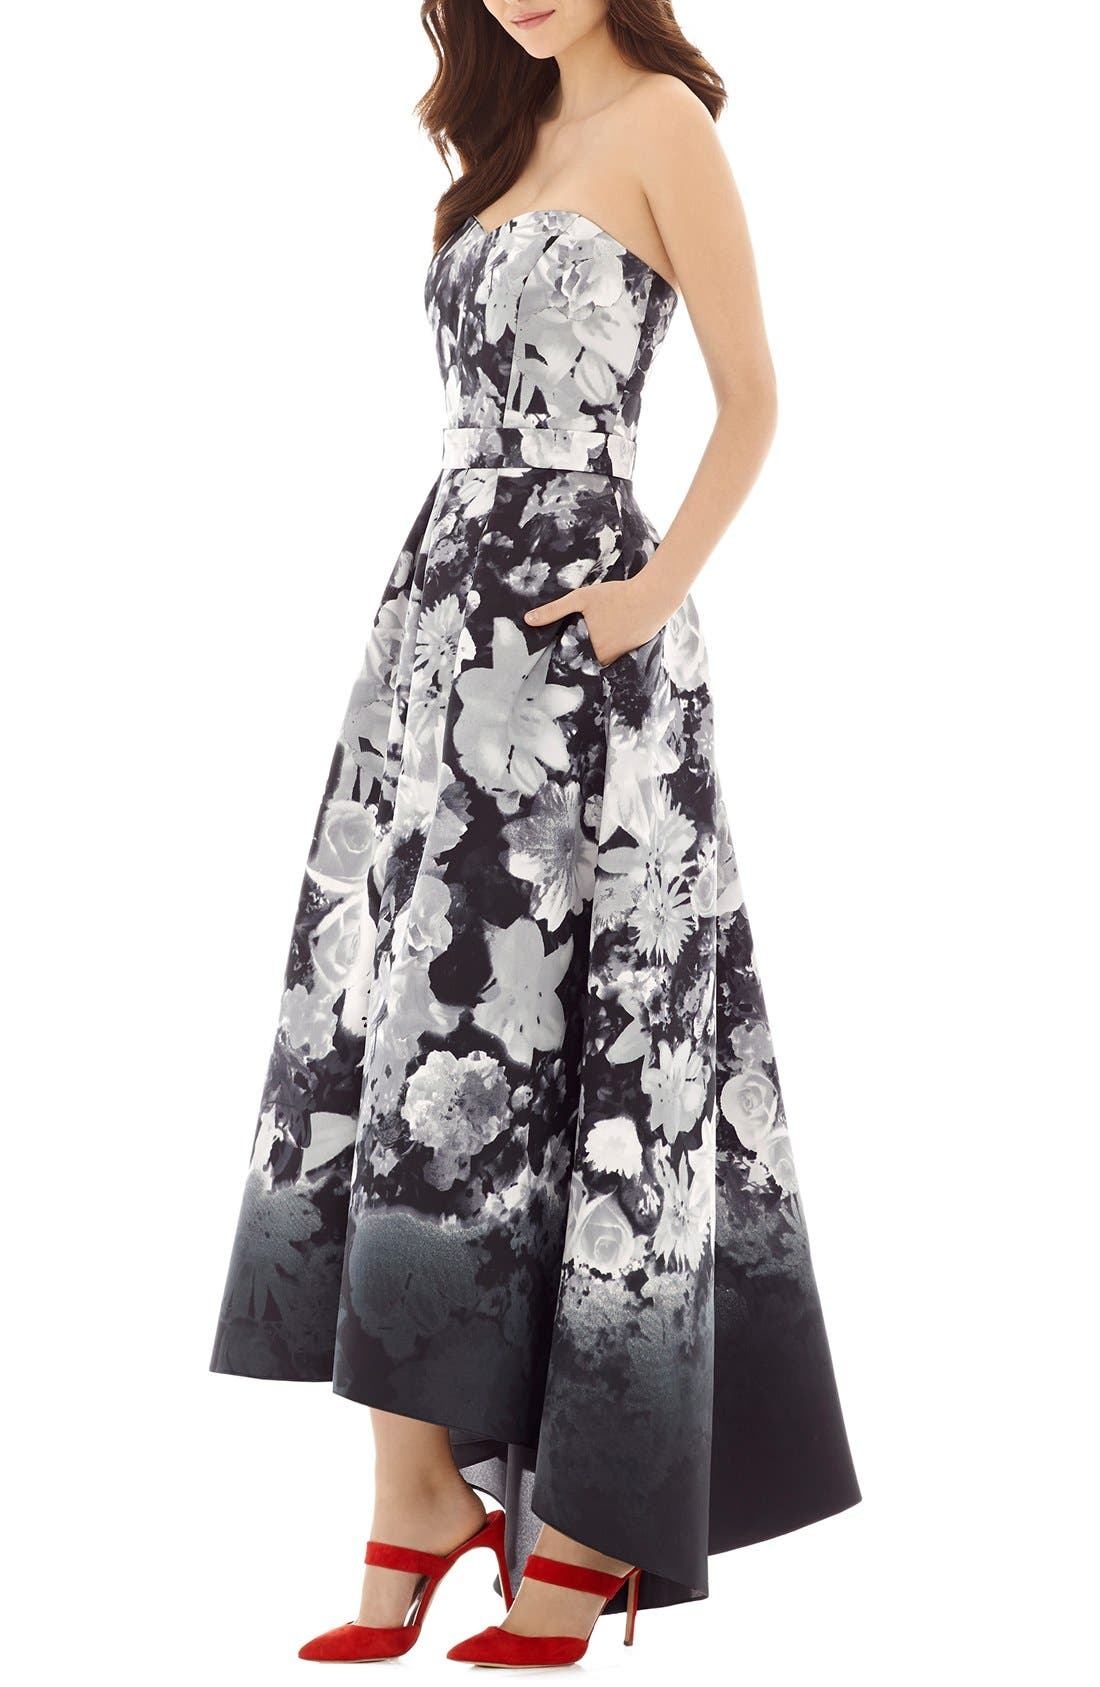 ALFRED SUNG Floral Print Strapless Sateen High/Low Dress, Main, color, BOHO